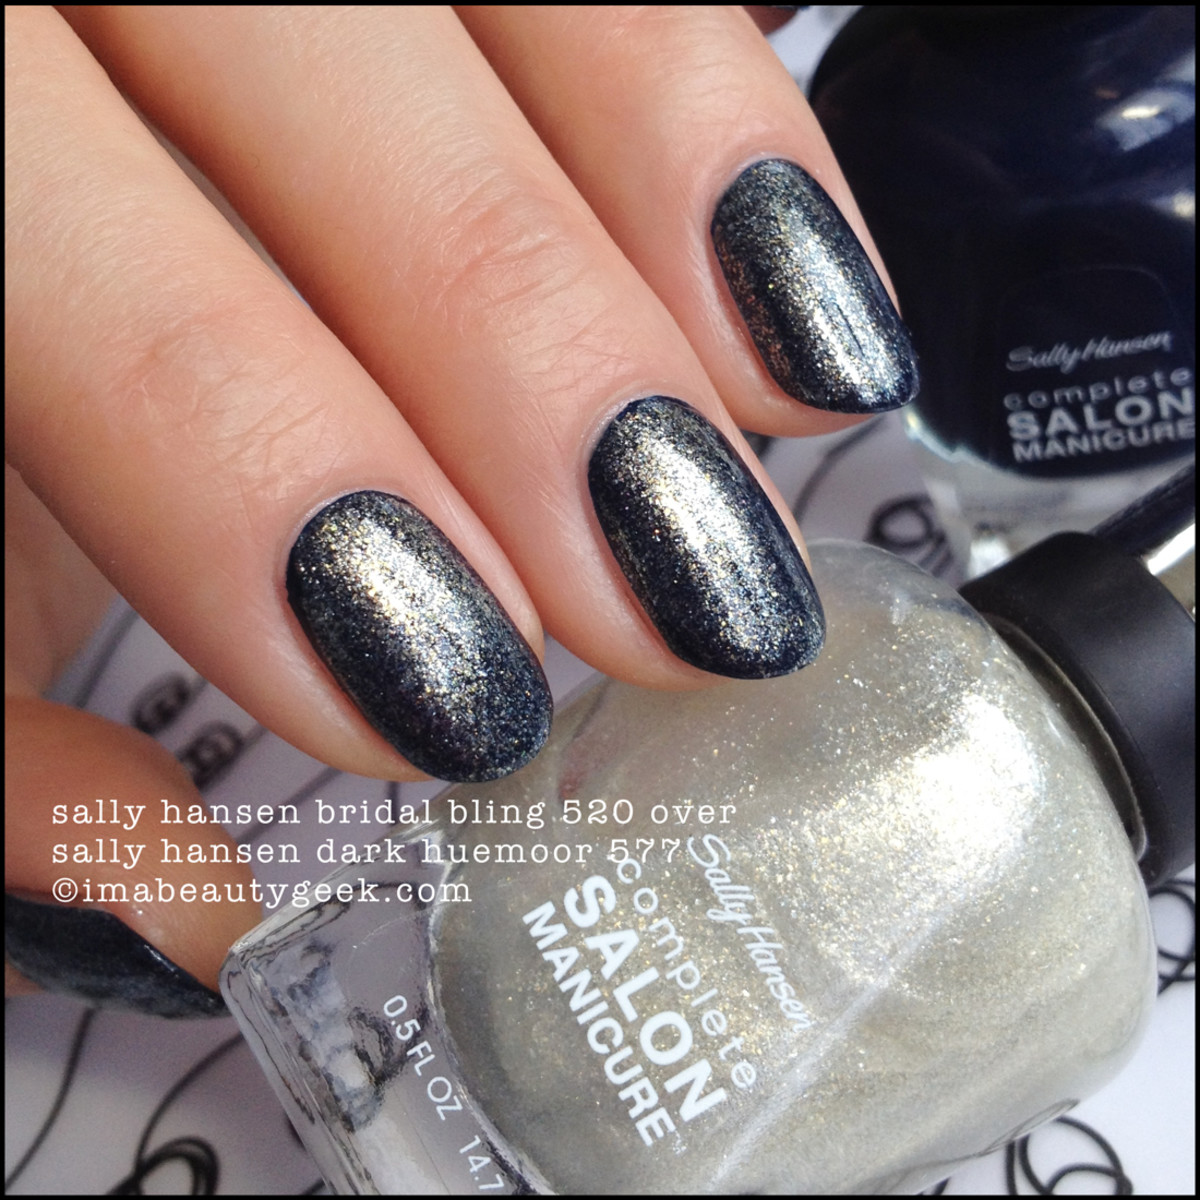 Sally Hansen Bridal Bling over Dark Huemoor Complete Salon Manicure